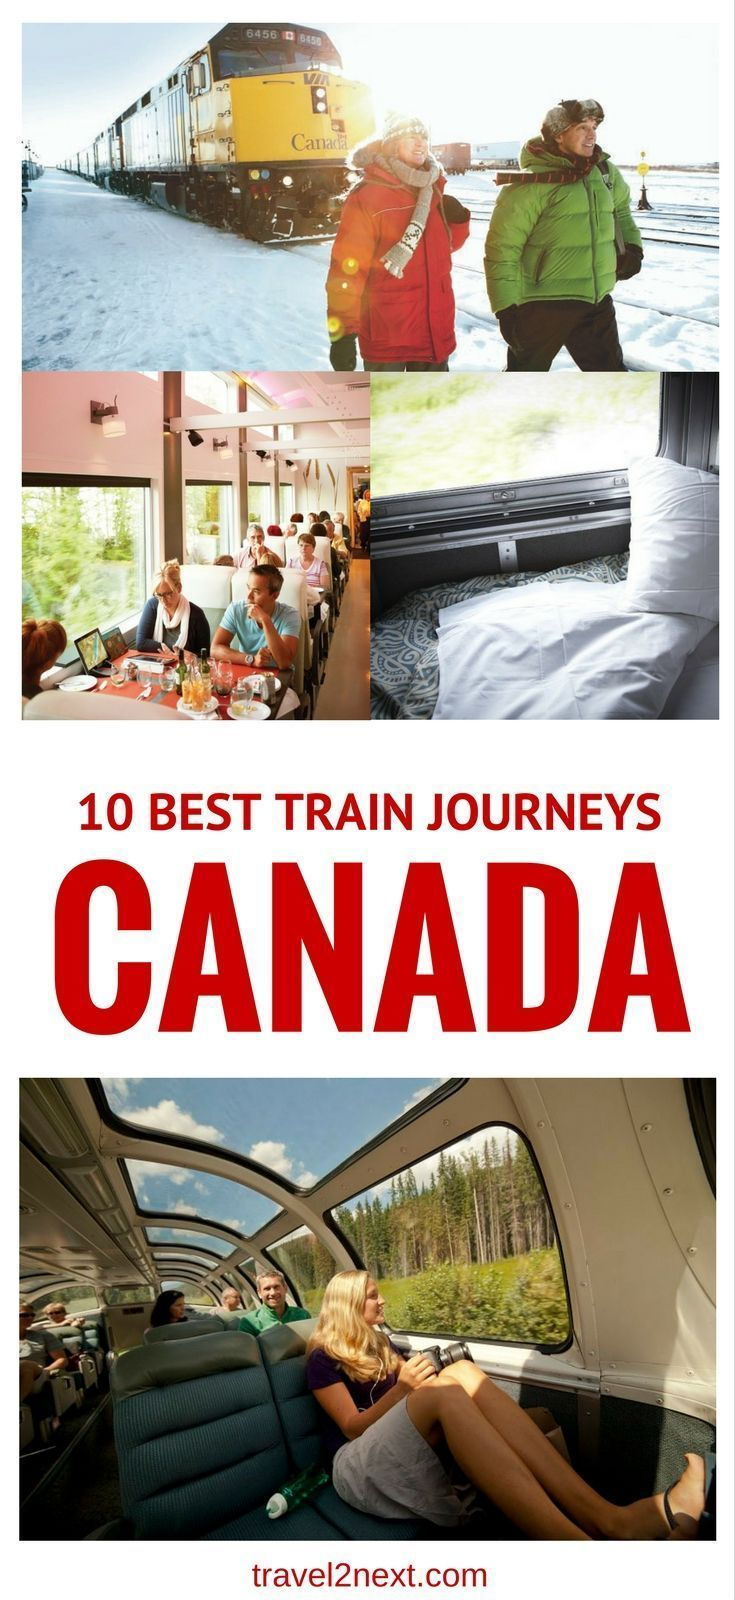 10 best train travel in Canada. There's something romantic about hopping on a train and travelling across the land. #style #shopping #styles #outfit #pretty #girl #girls #beauty #beautiful #me #cute #stylish #photooftheday #swag #dress #shoes #diy #design #fashion #Travel